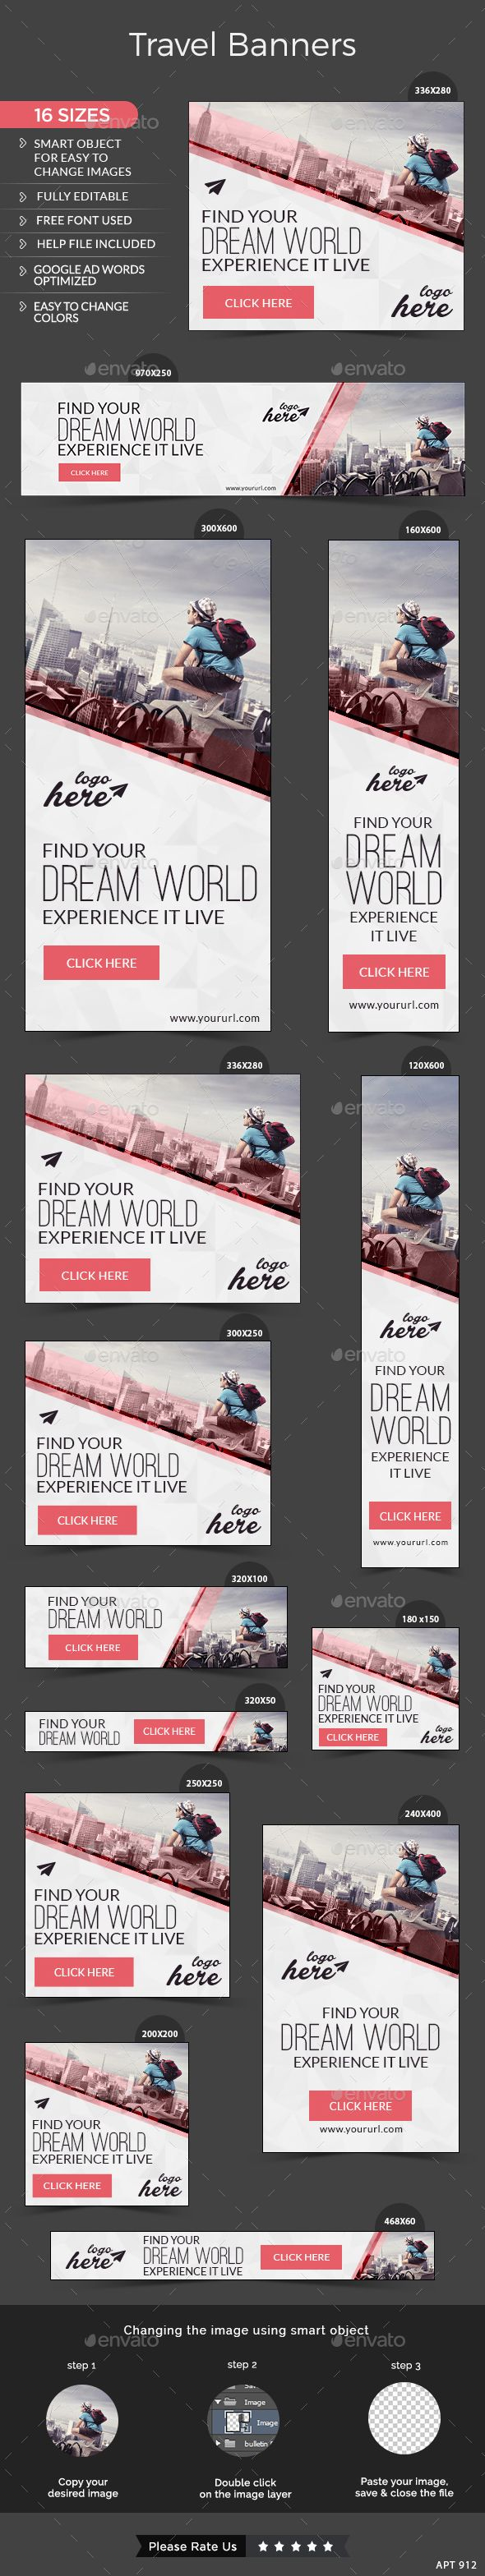 51 best web-banner images on Pinterest | Web banners, Banner ...